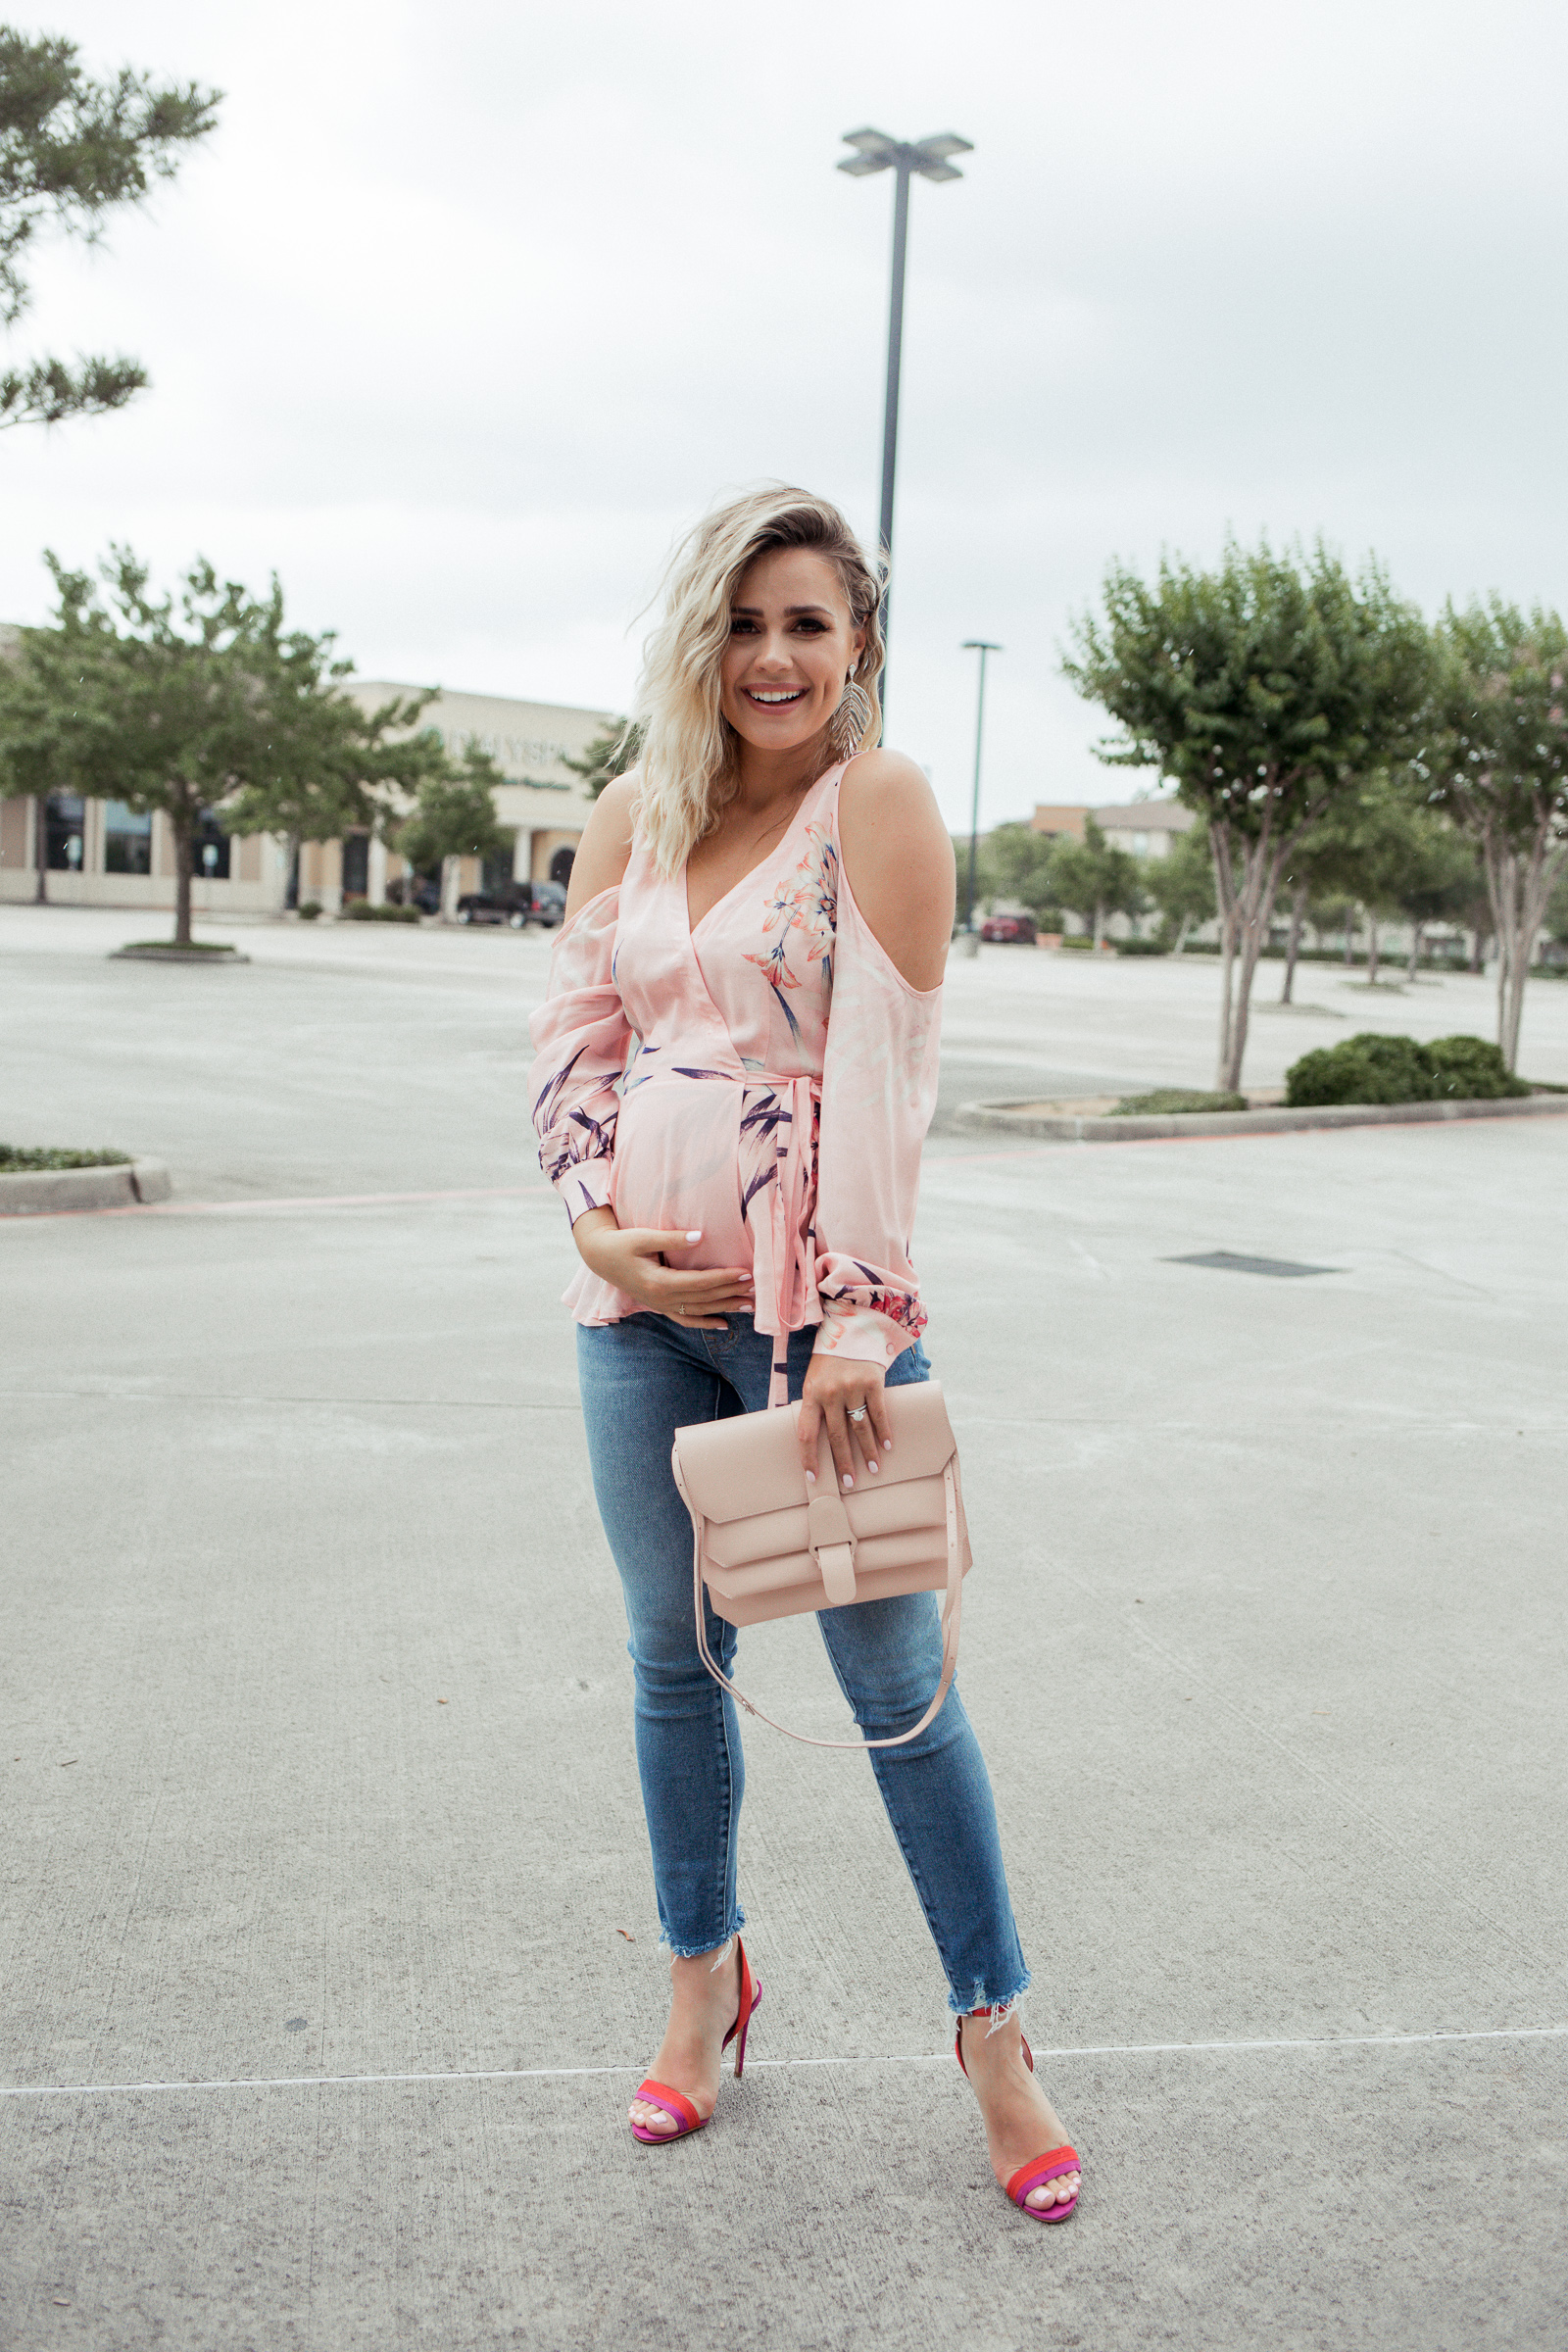 Looking for maternity clothes? Houston blogger Uptown with Elly Brown shares Where to Buy The Best Maternity Clothes Online.